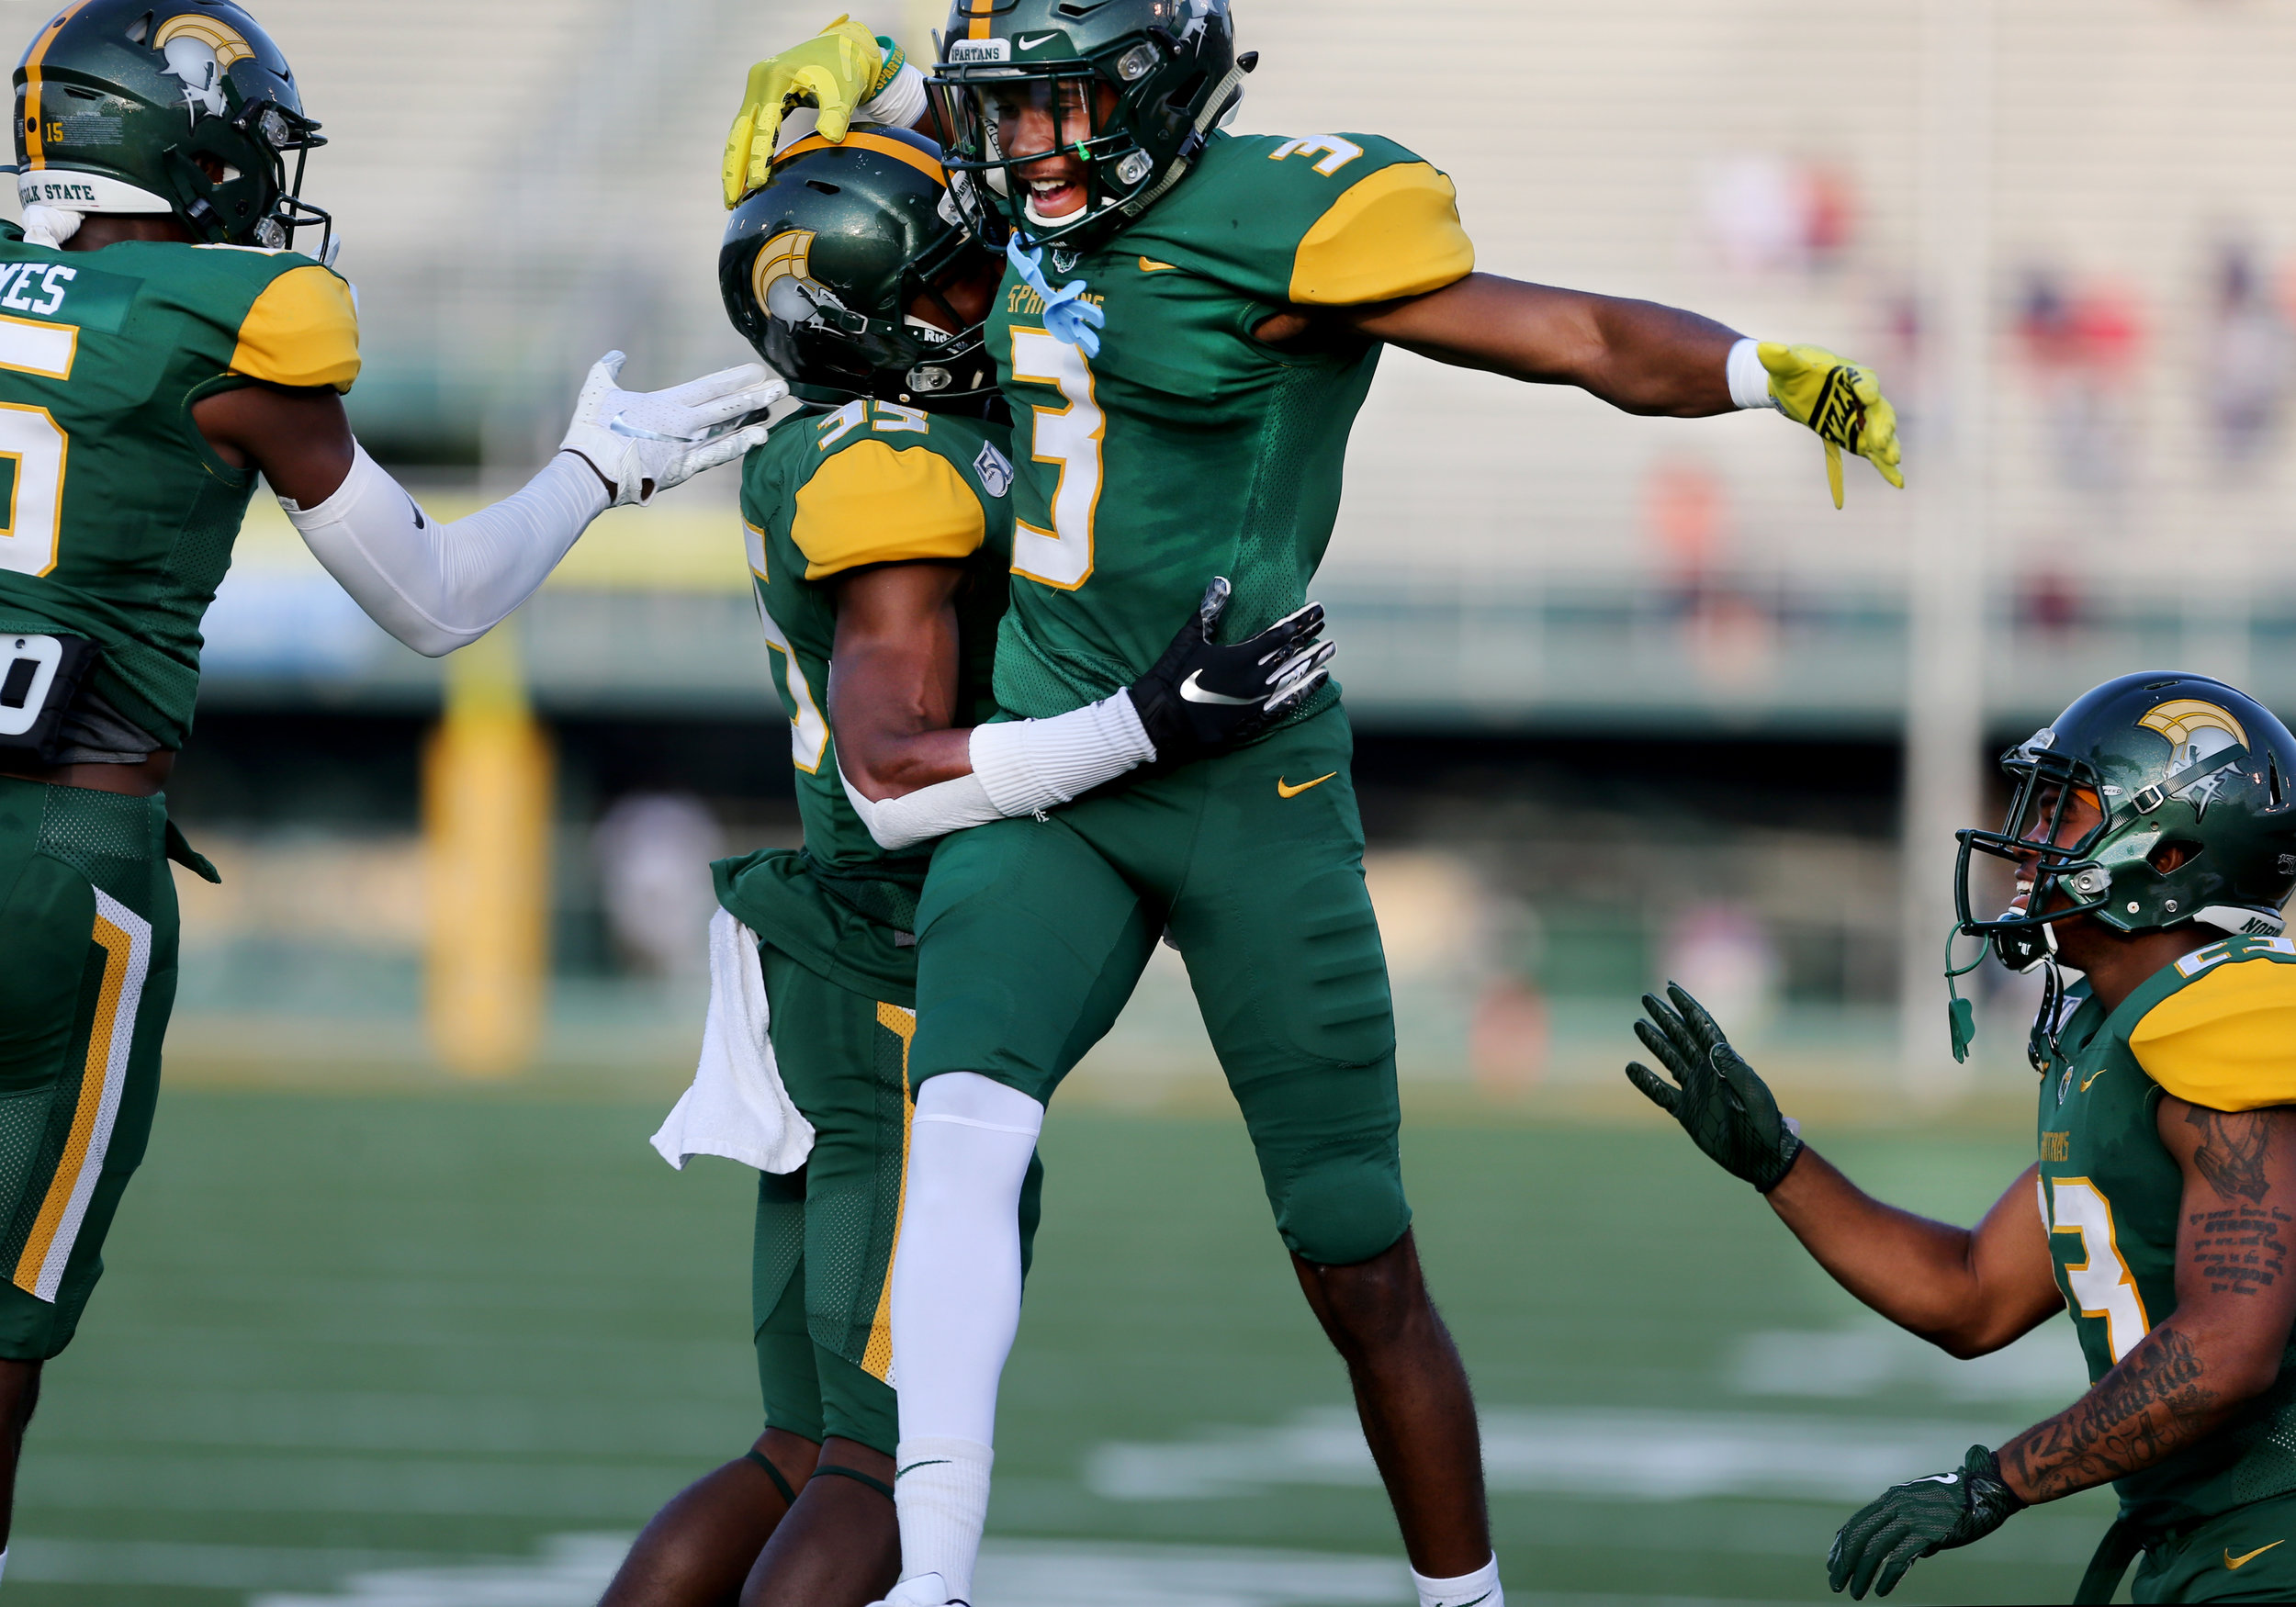 Norfolk State players celebrate with Kevin Johnson, second from left, after Johnson scored his first collegiate touchdown with a carry of 33 yards against Virginia State, Saturday, September 7, 2019 at Dick Price Stadium in Norfolk.